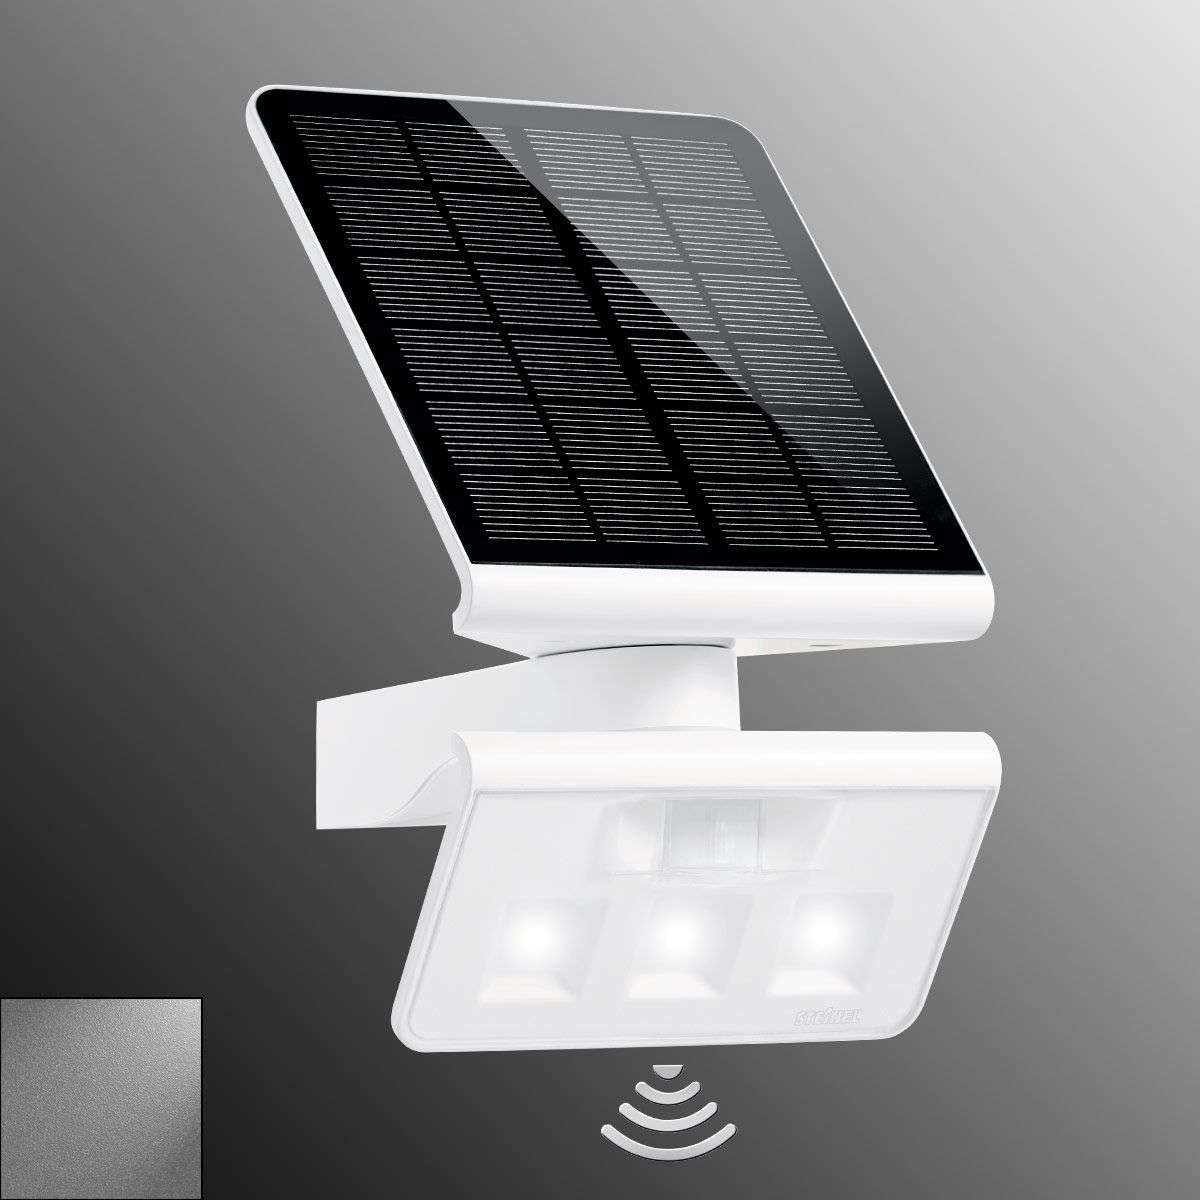 X solar l s solar led outdoor wall light efficient lights x solar l s solar led outdoor wall light efficient mozeypictures Gallery